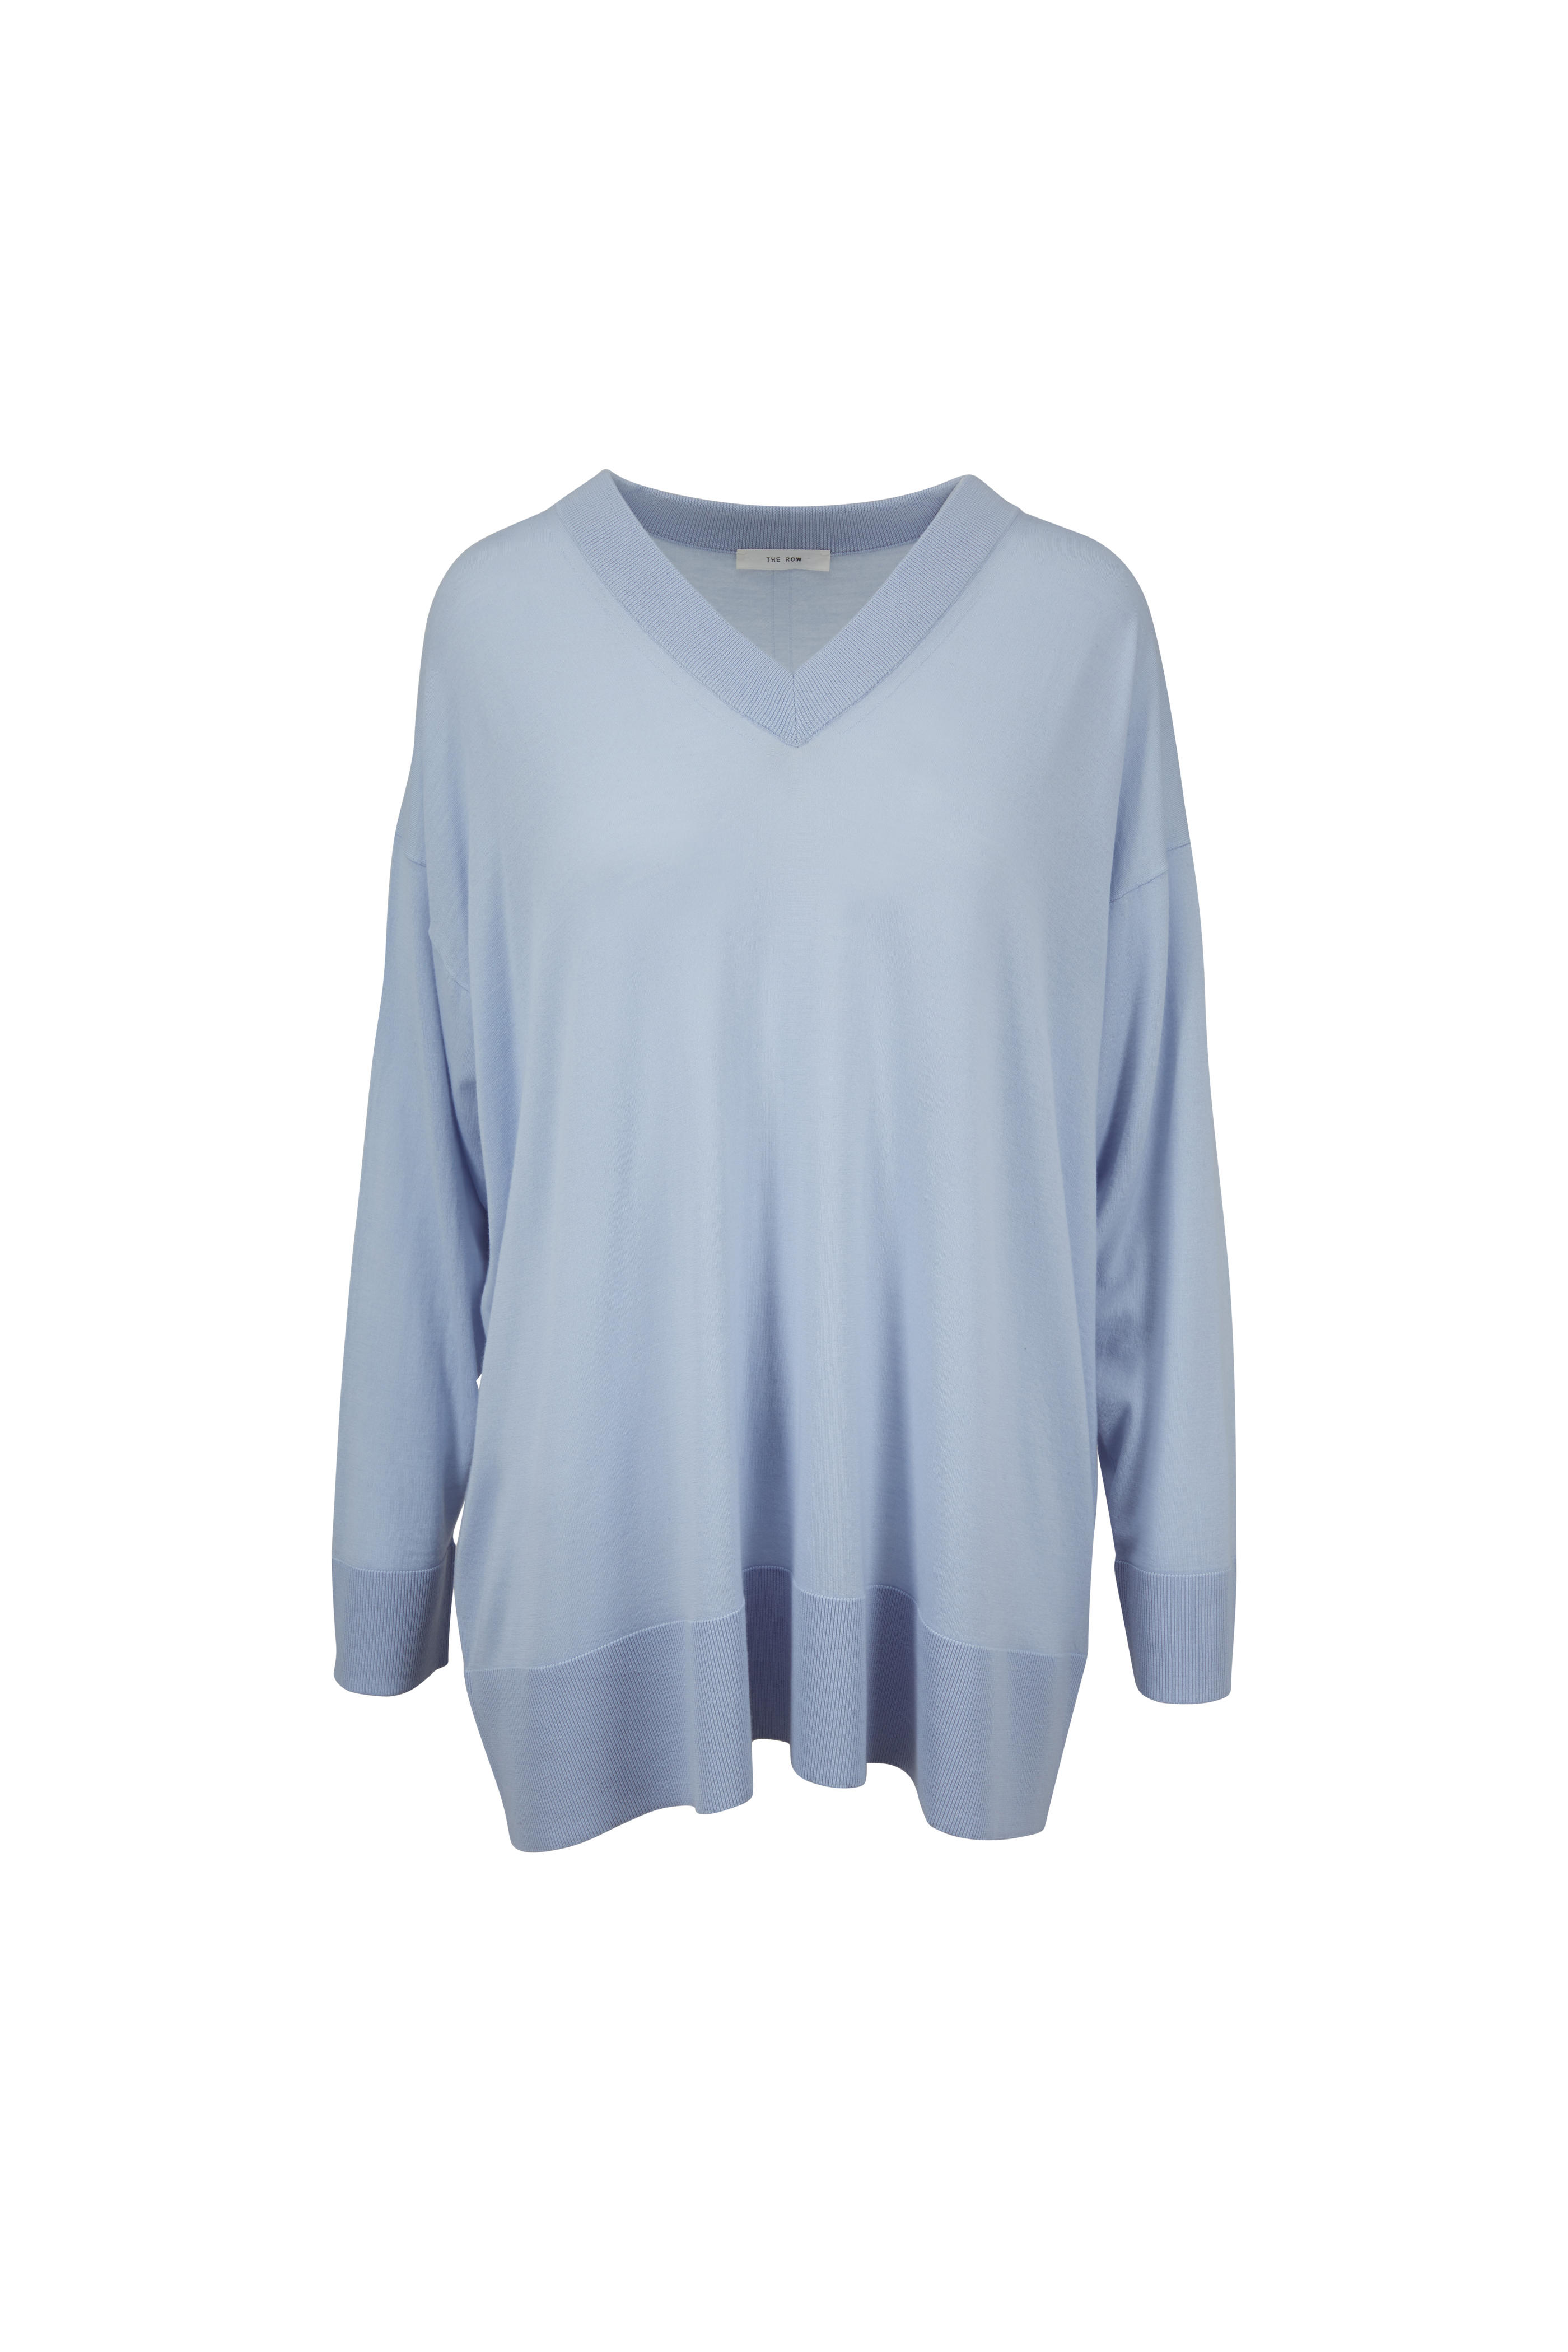 e92ae89636123 The Row - Sabrinah Ice Blue Oversized V-Neck Sweater | Mitchell Stores